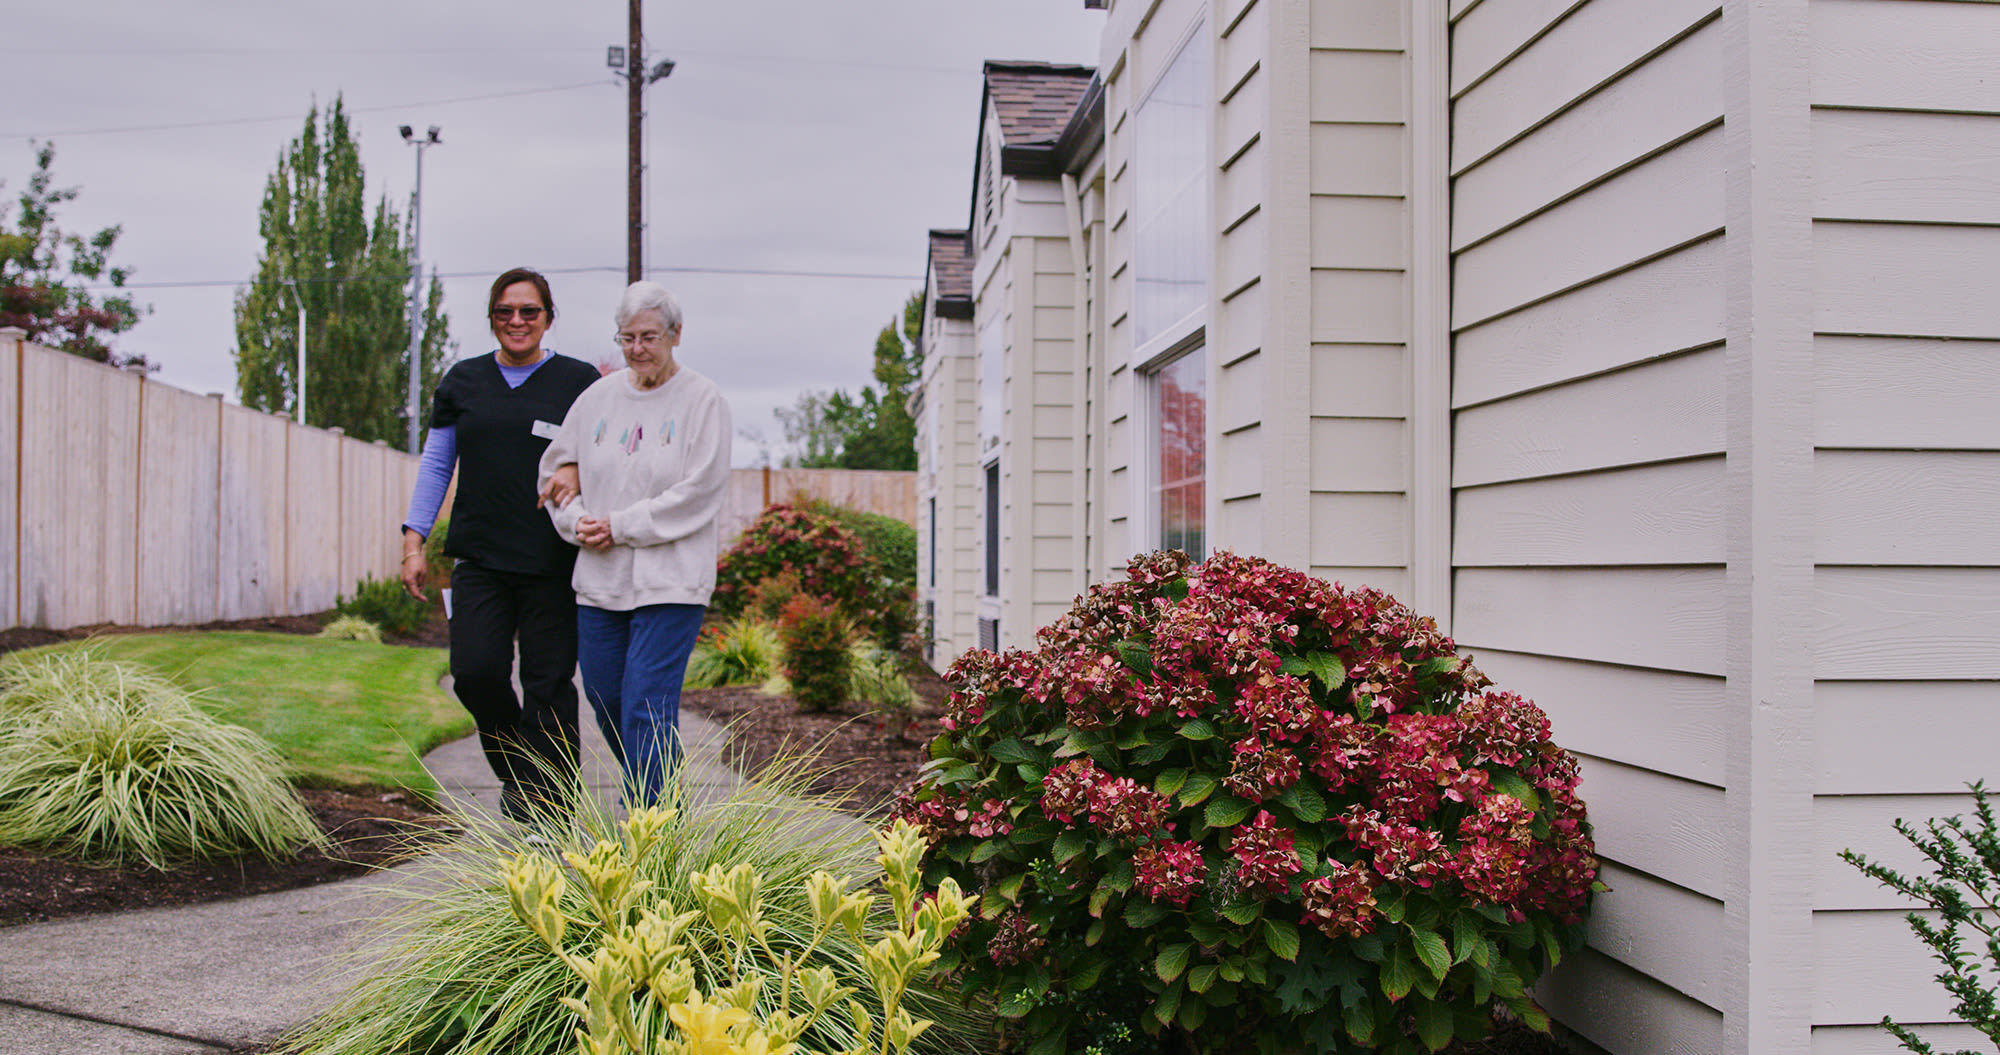 resident and a caretaker walking outside at Sweetbriar Villa in Springfield, Oregon